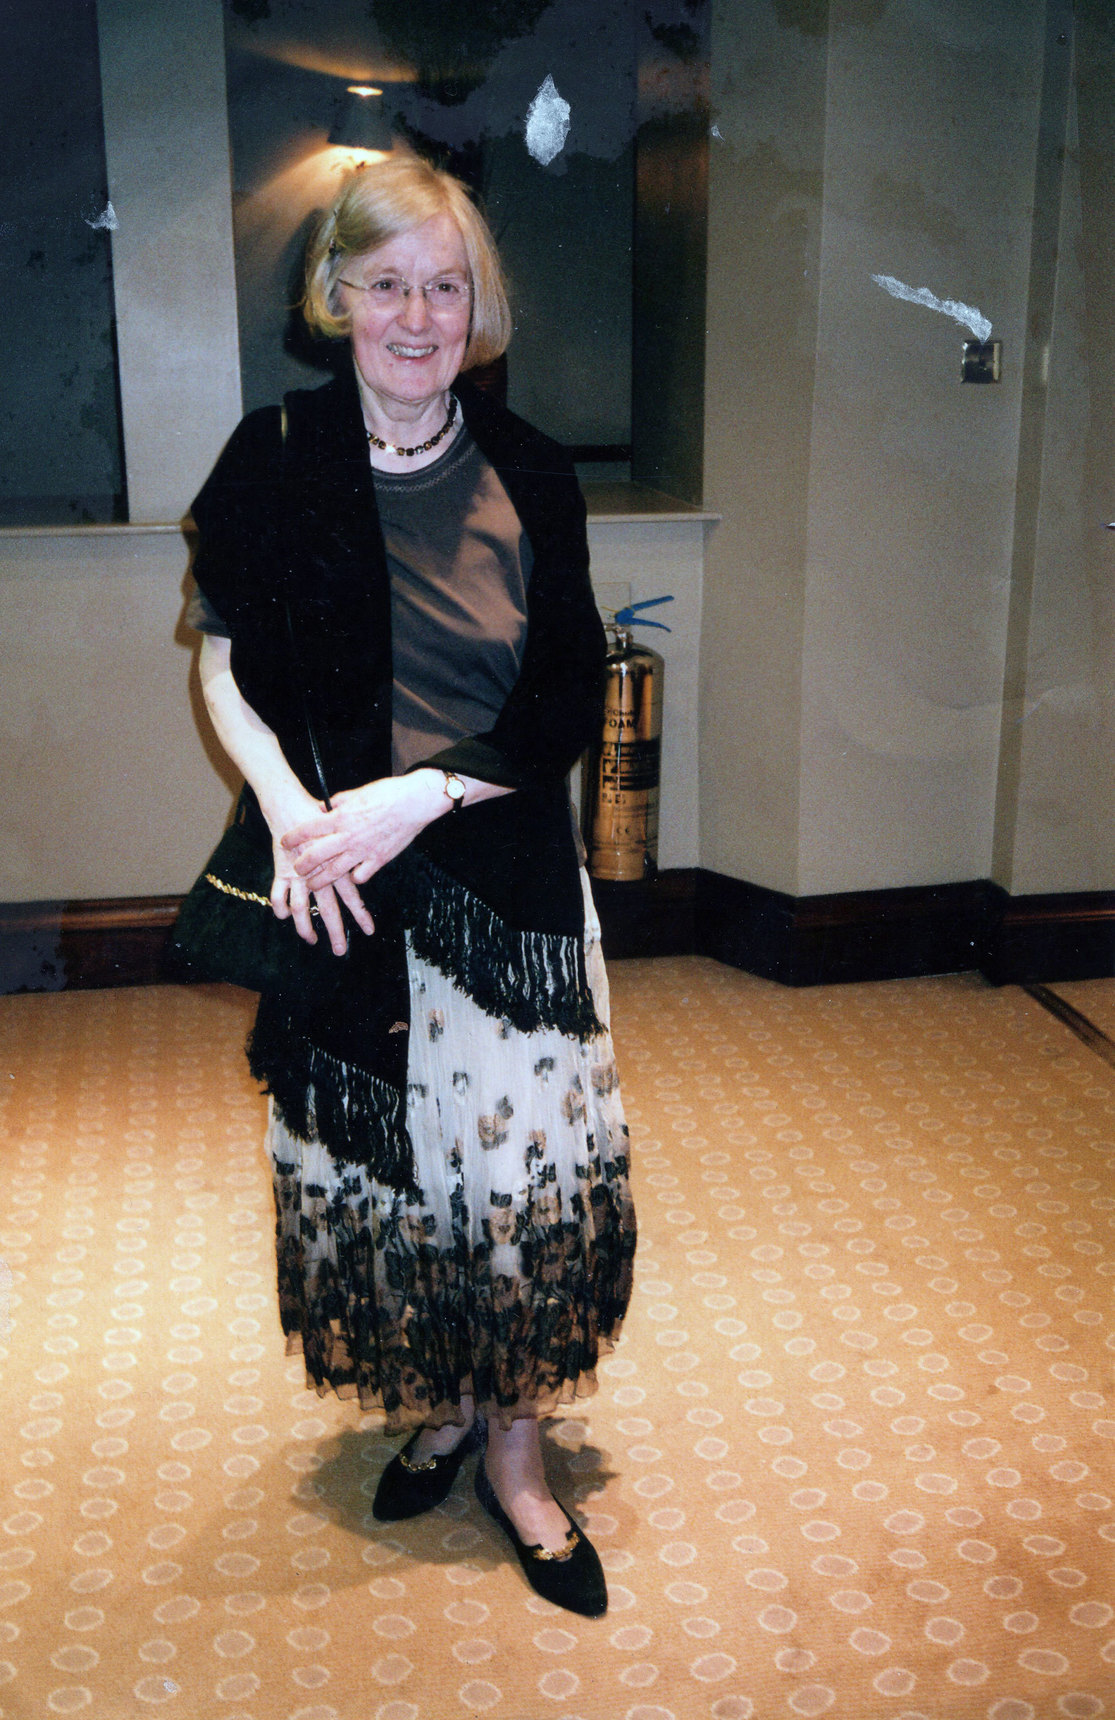 Lady Dressed Up For An Evening Out At The George Hotel 2007